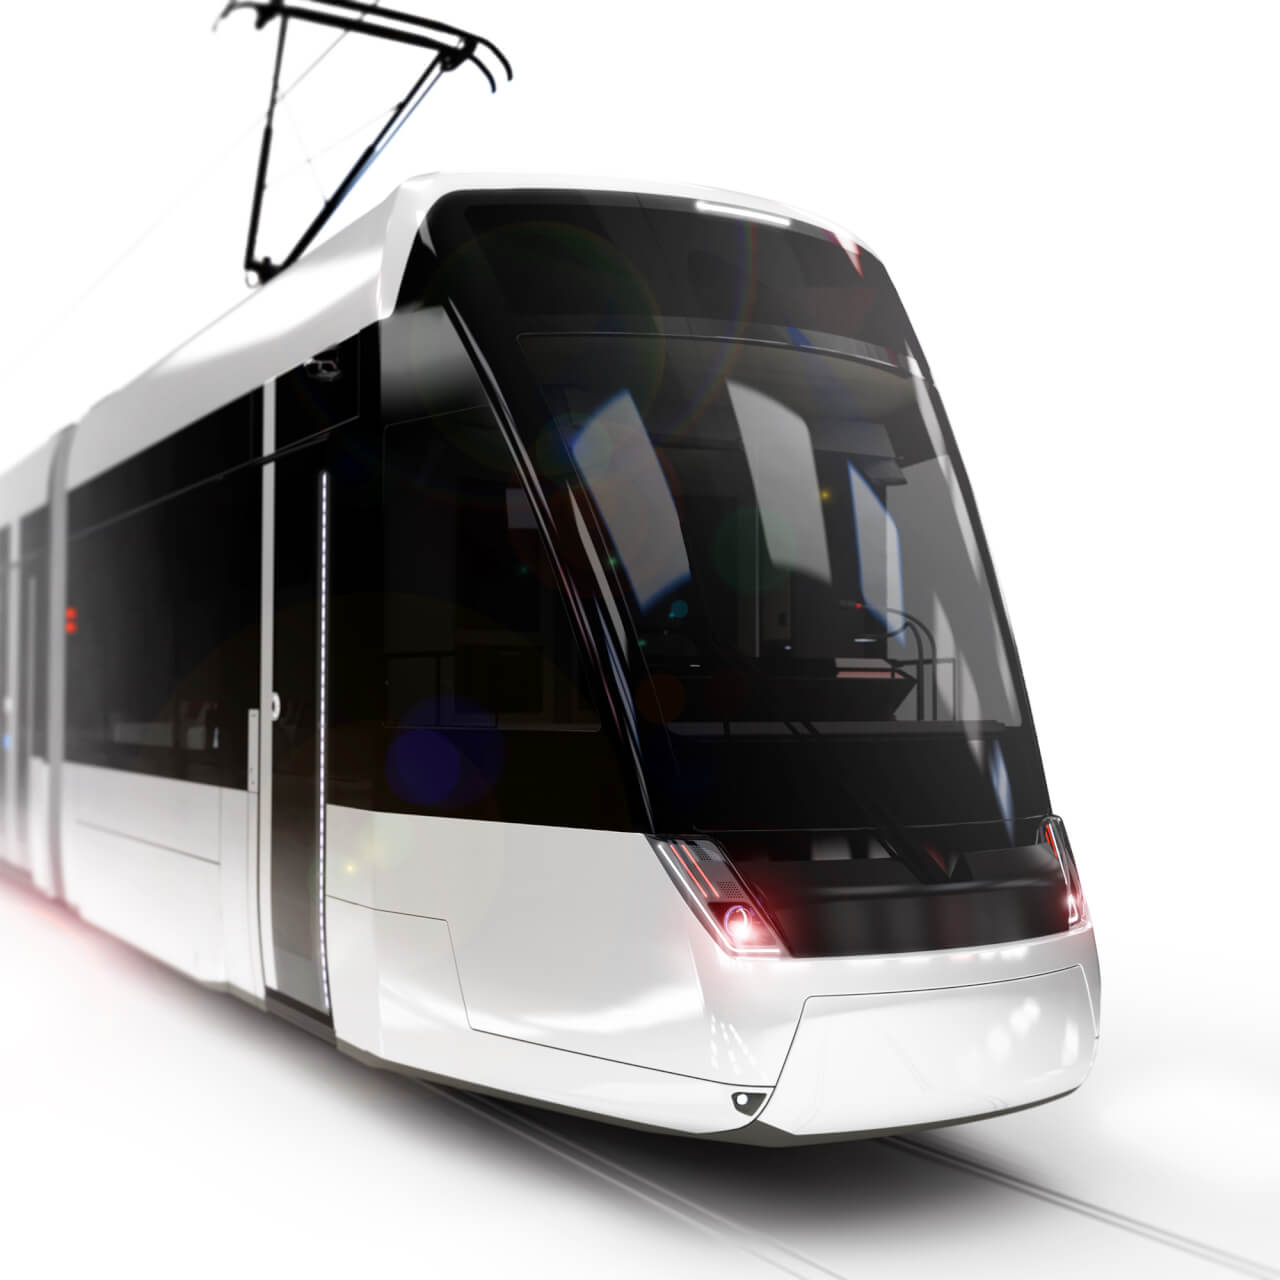 Der Stadler Tramlink Bern, eine moderne Strassenbahn von Döllmann Design, modern tram, productdesign, rendering, transportationdesign, tramdesign, traindesign, transportation design, urban transport,